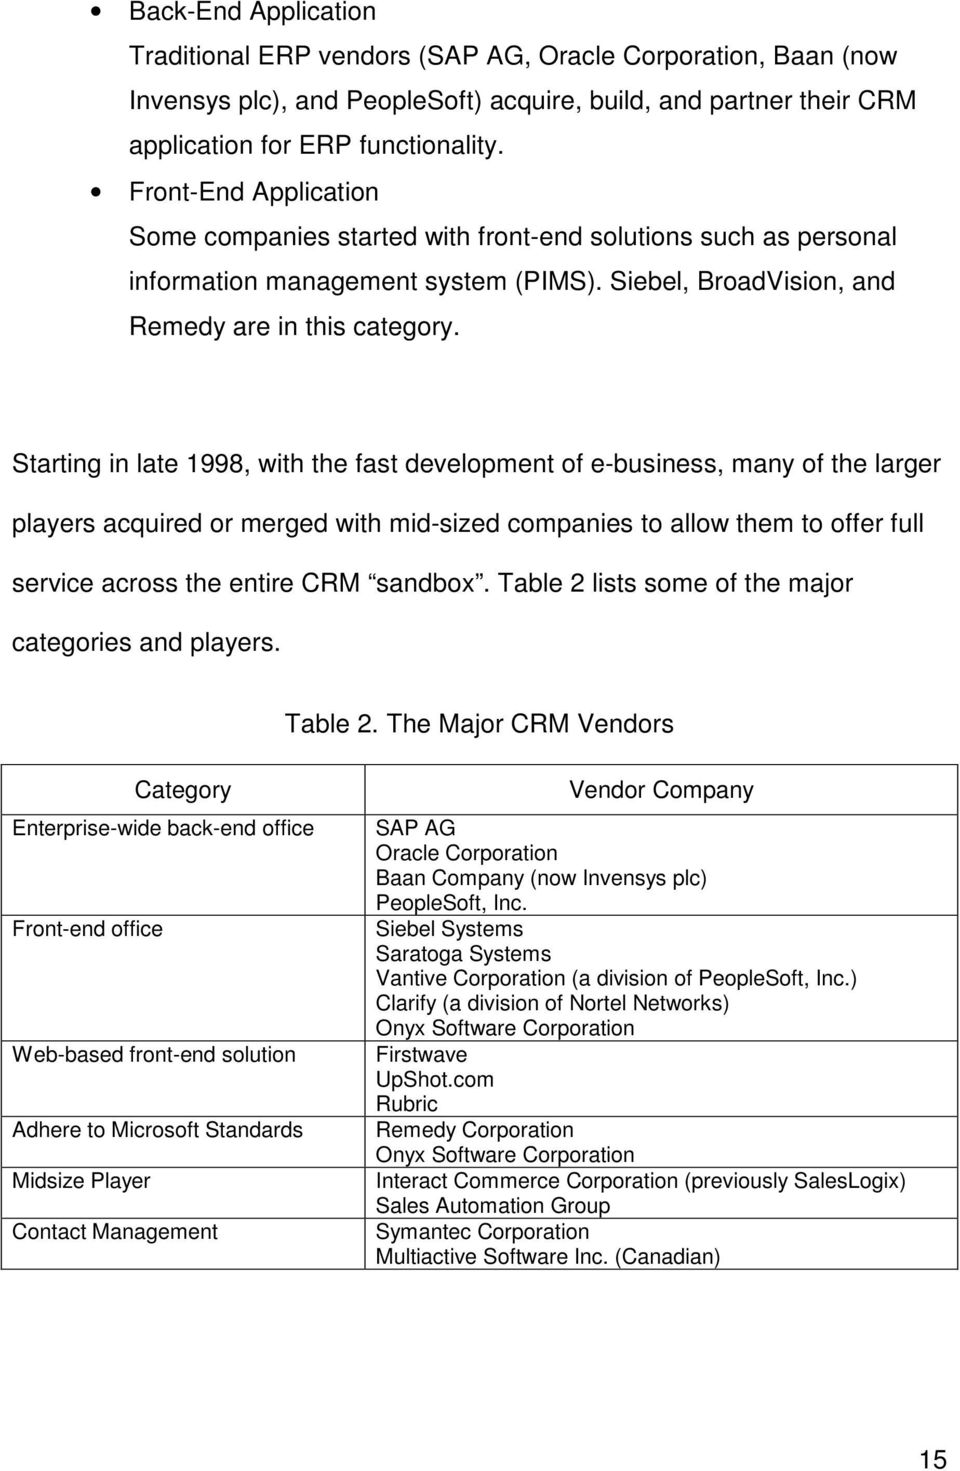 Starting in late 1998, with the fast development of e-business, many of the larger players acquired or merged with mid-sized companies to allow them to offer full service across the entire CRM